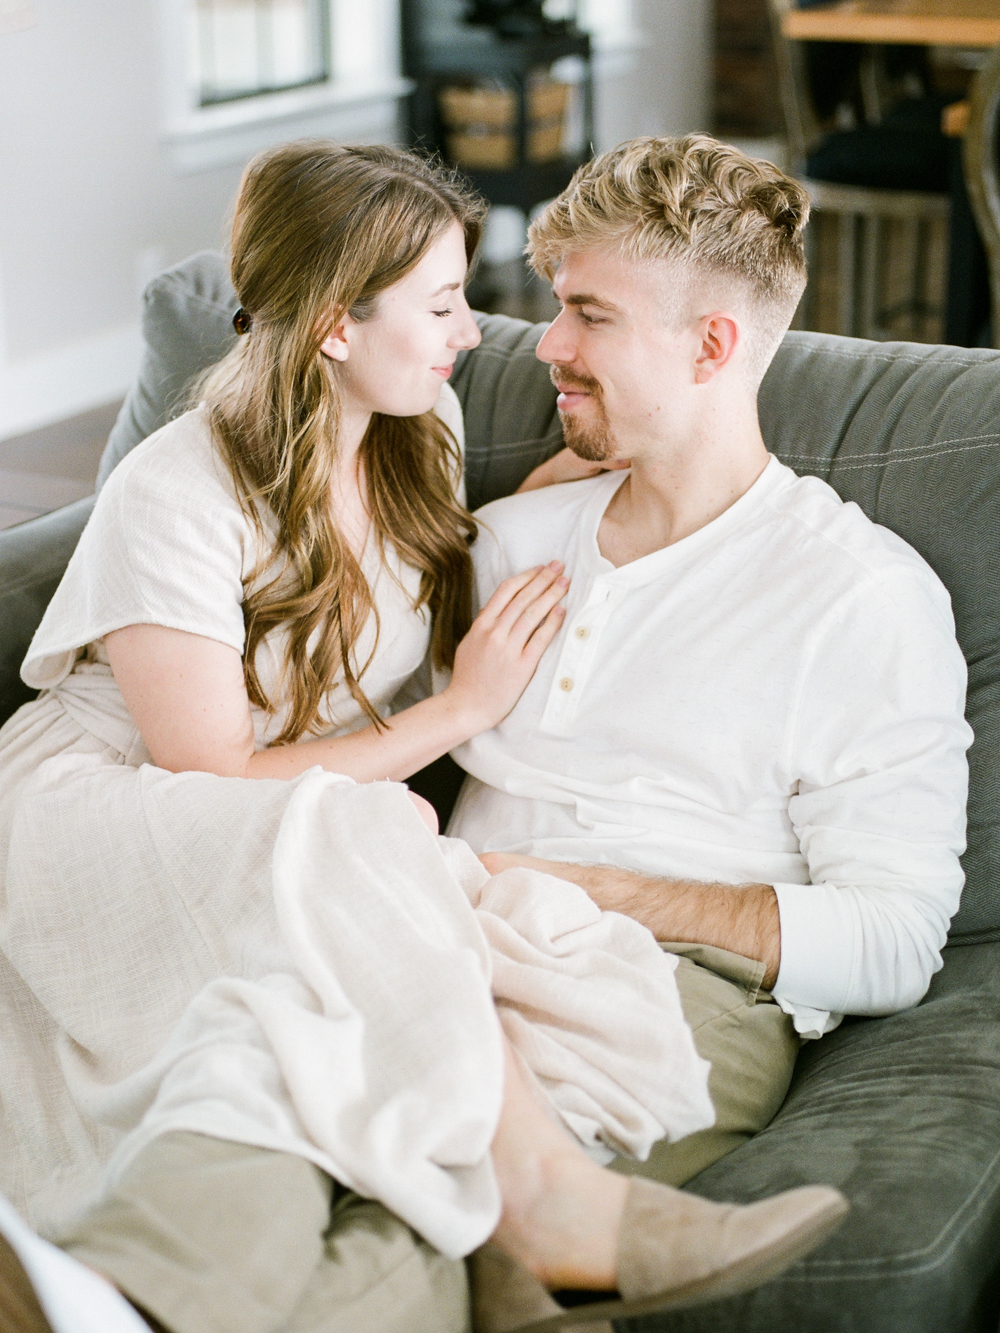 at home engagement session - Christine Gosch - featured on Magnolia Rouge - film photographer - elopement and intimate wedding photographer-35.jpg